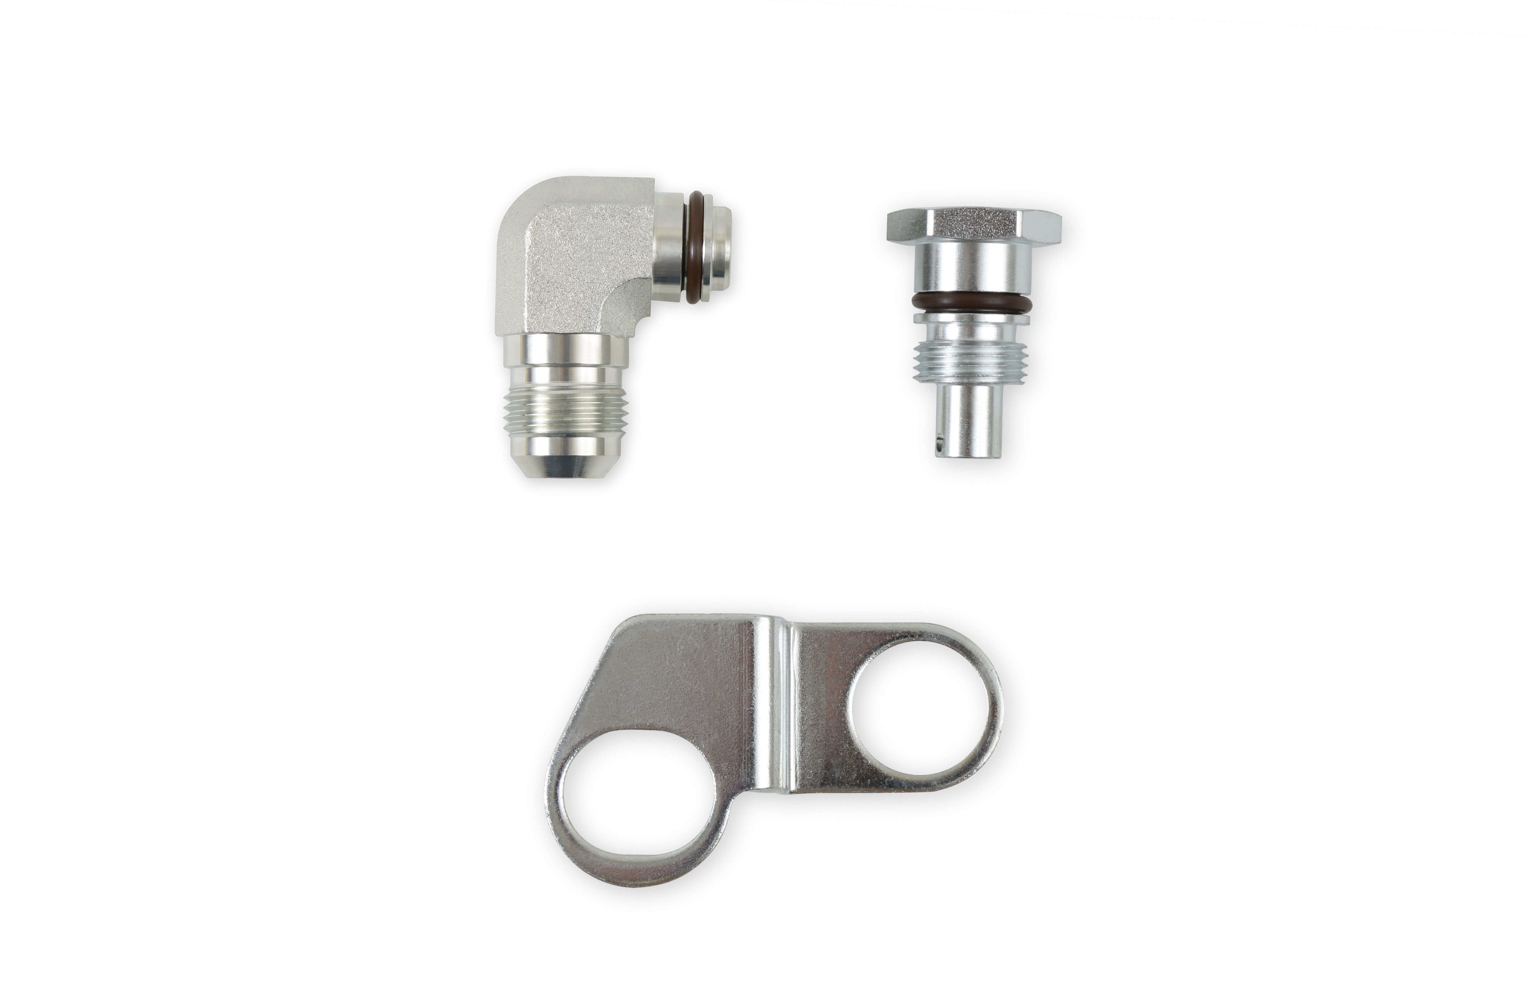 Earls PS0002ERL Fitting, Adapter, Straight, 10 AN Male Reservoir, 5/8 in Hose Barb, Flow Valve / Retaining Bracket, Steel, Natural, Kit